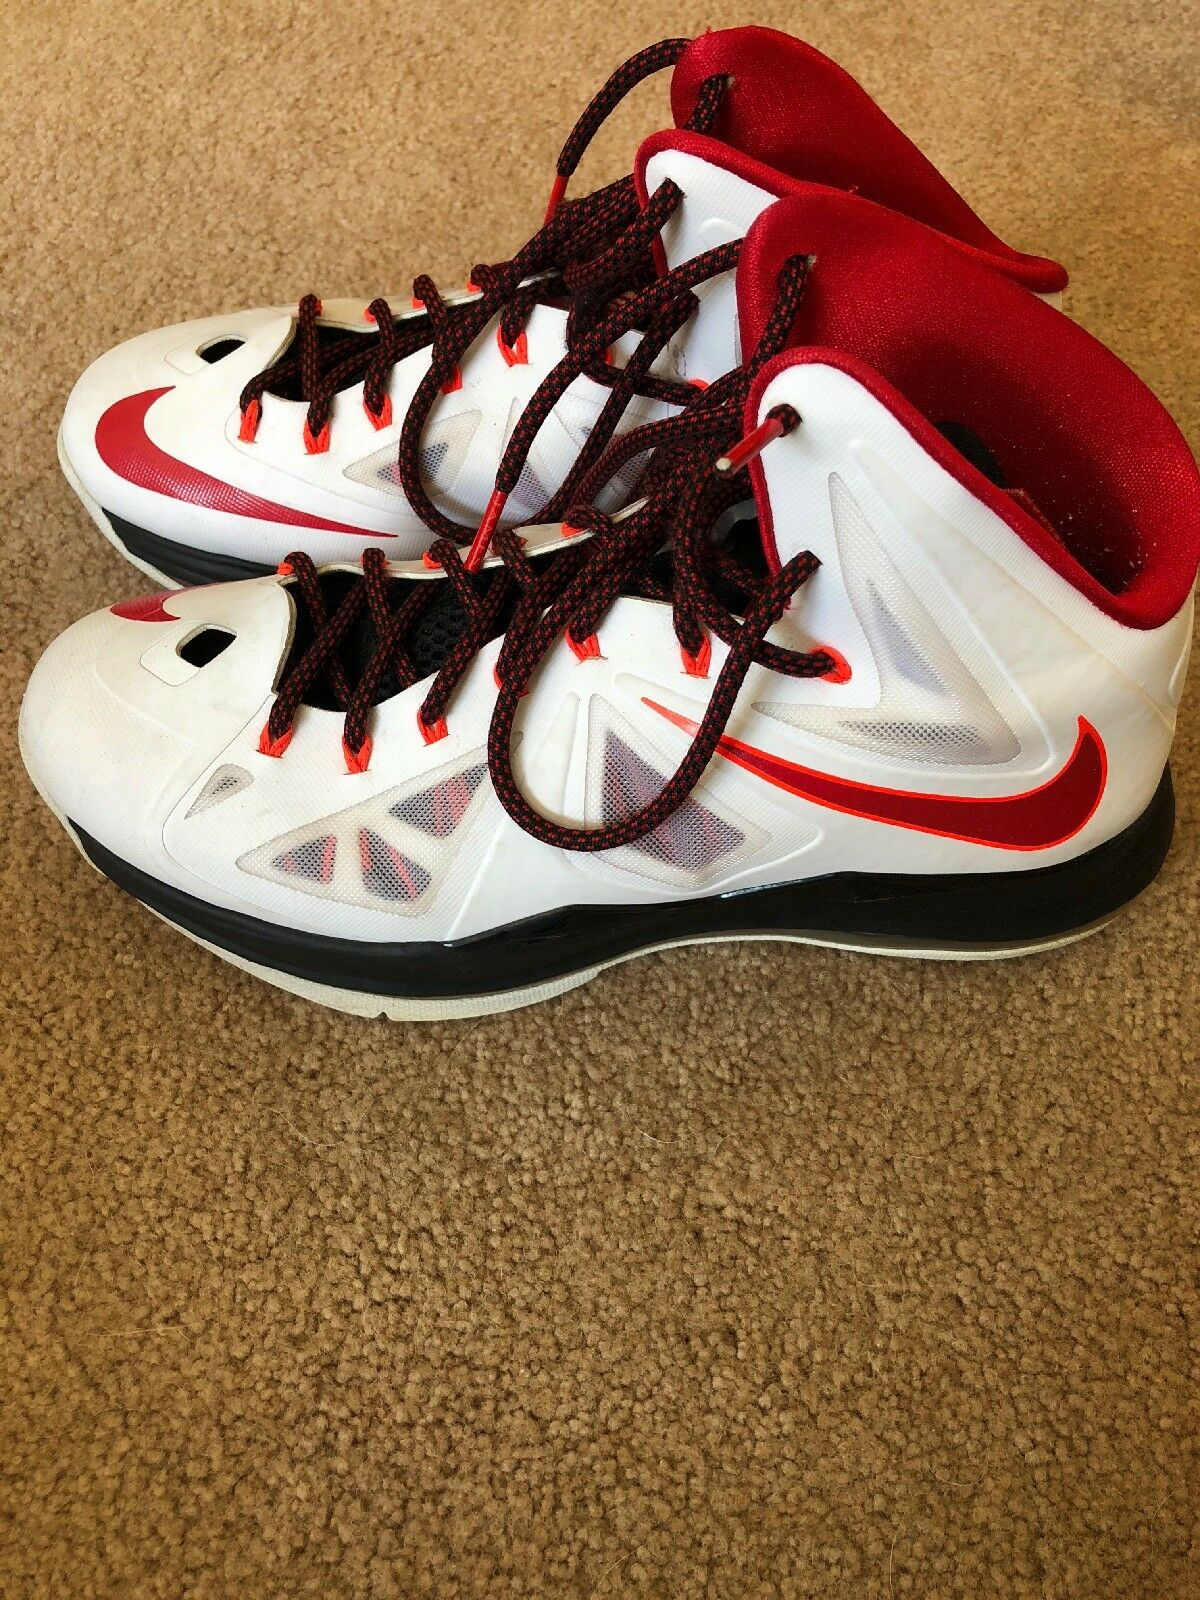 Lebron X Shoes sz 10  Cheap and fashionable